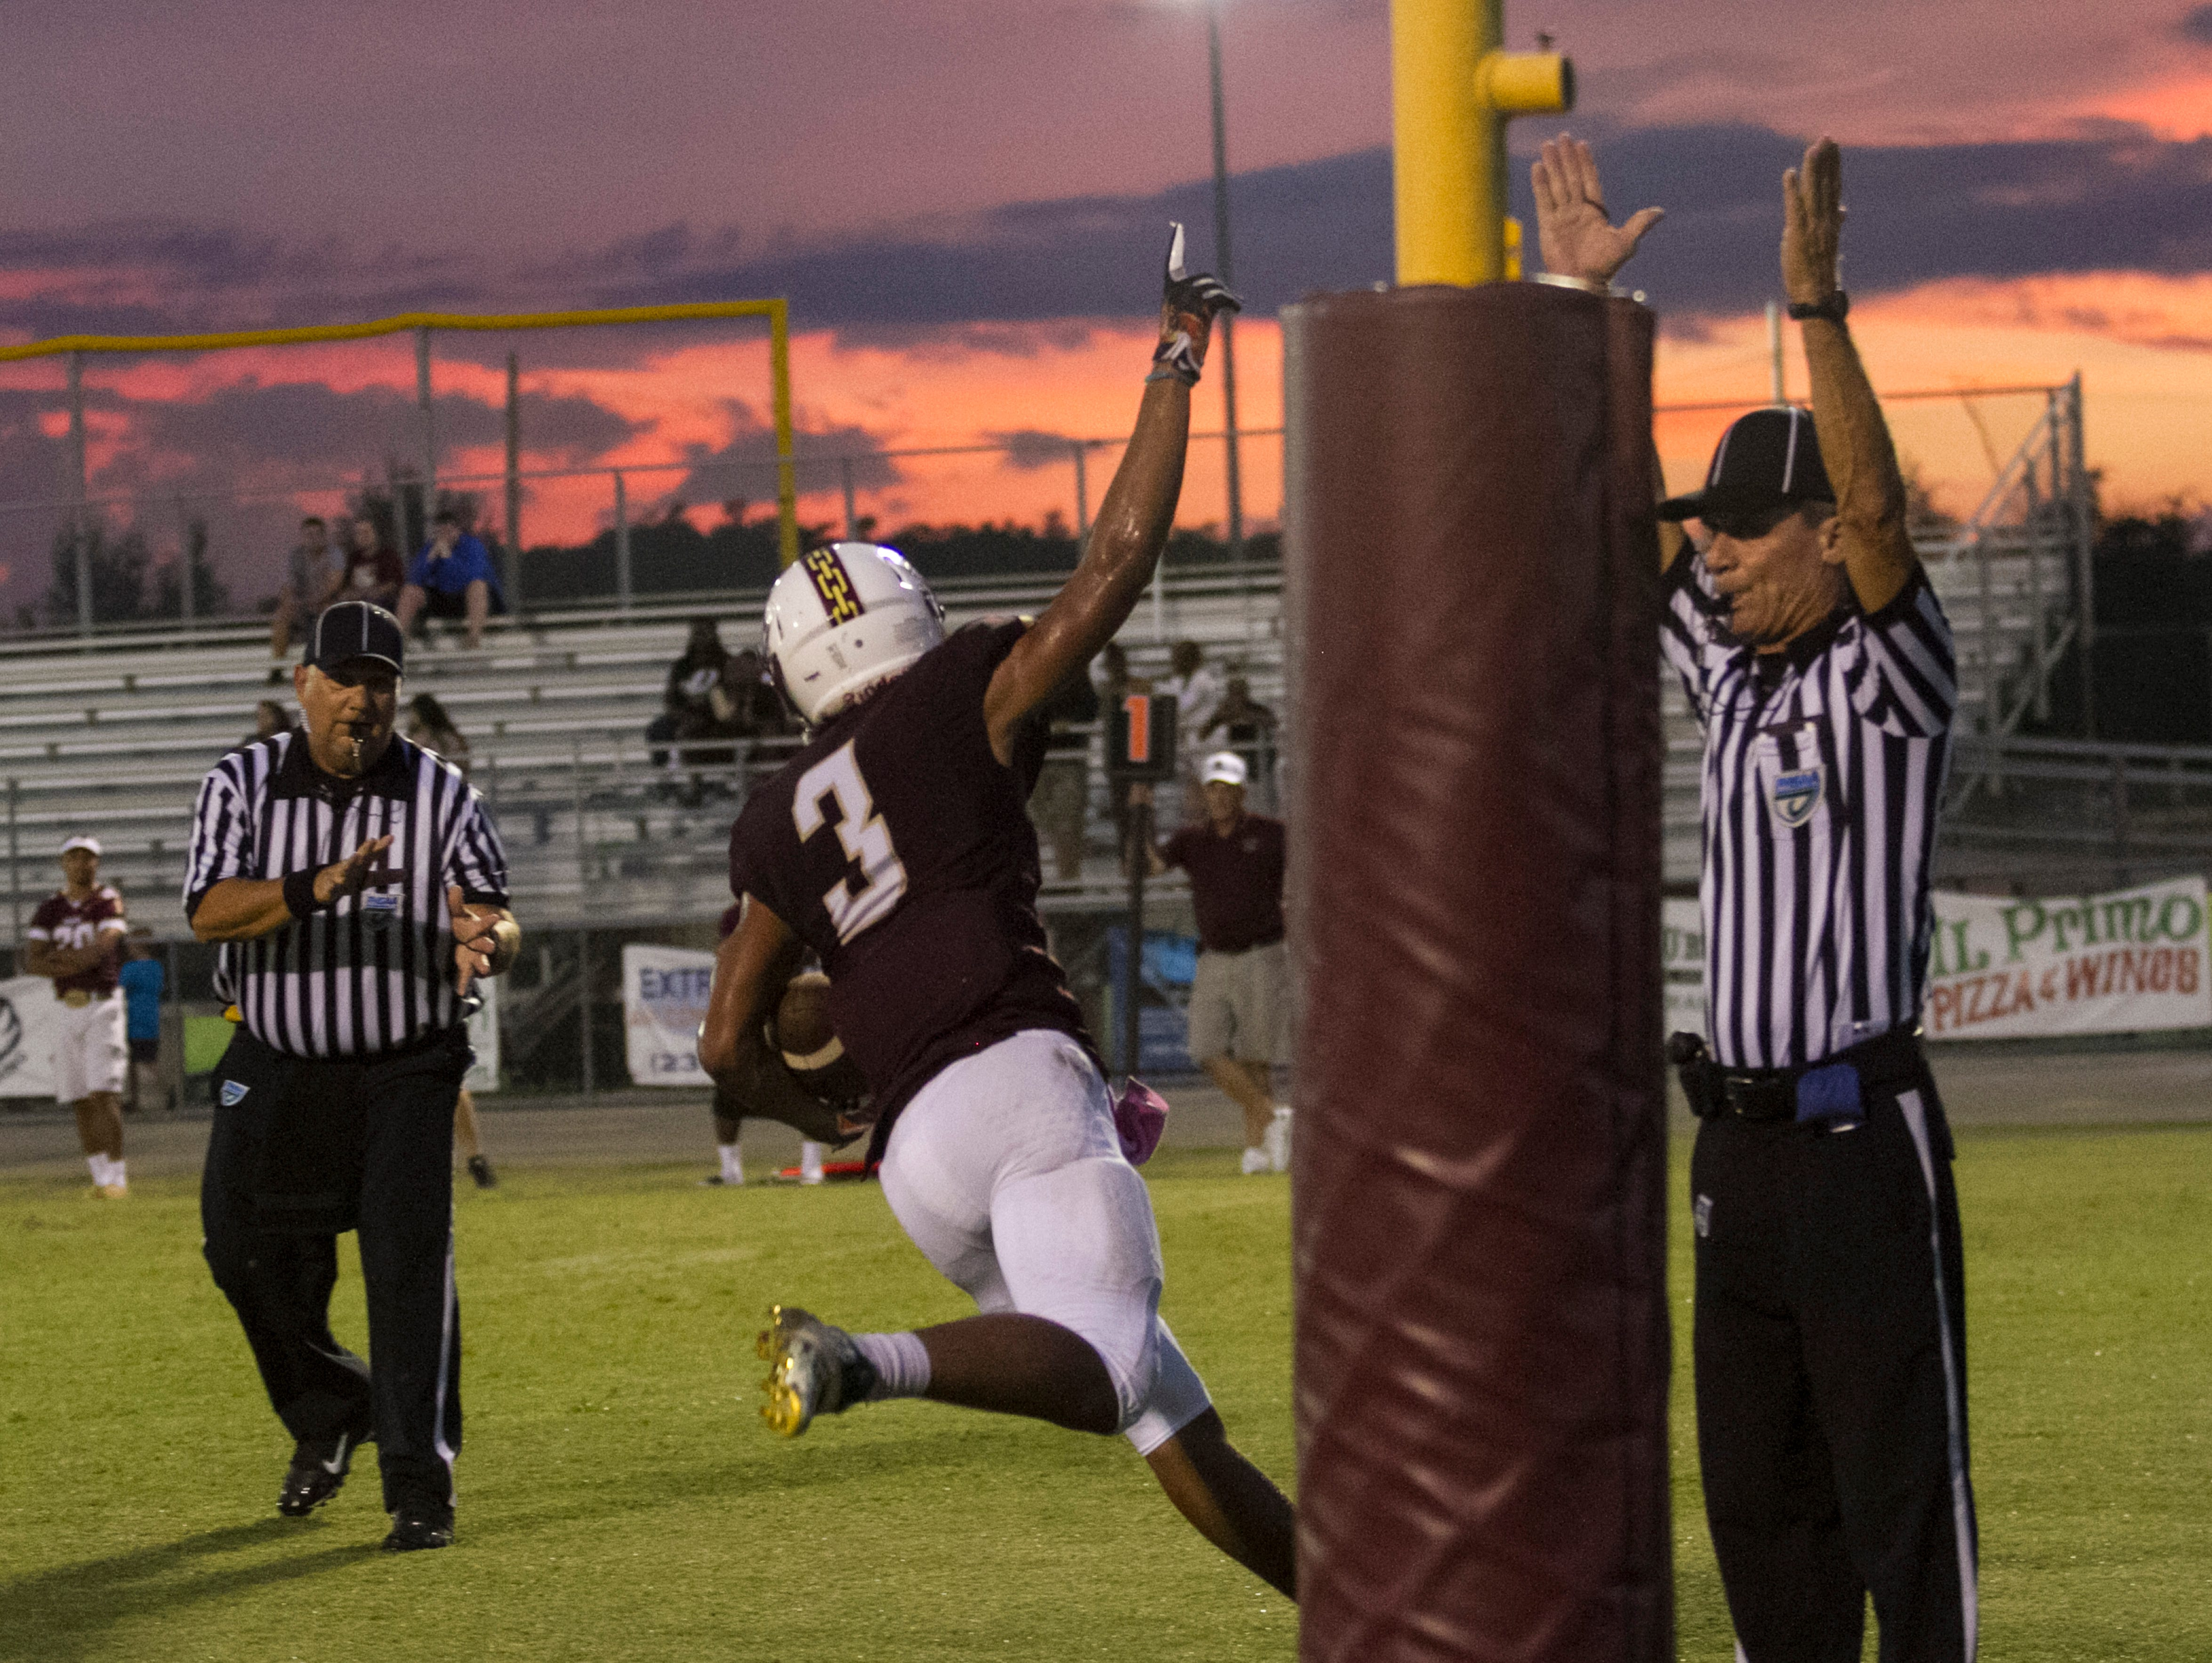 Riverdale's Jaylin Cochran celebrates scoring their first touchdown against East Lee on Friday, September 16, 2016, at Riverdale High School.